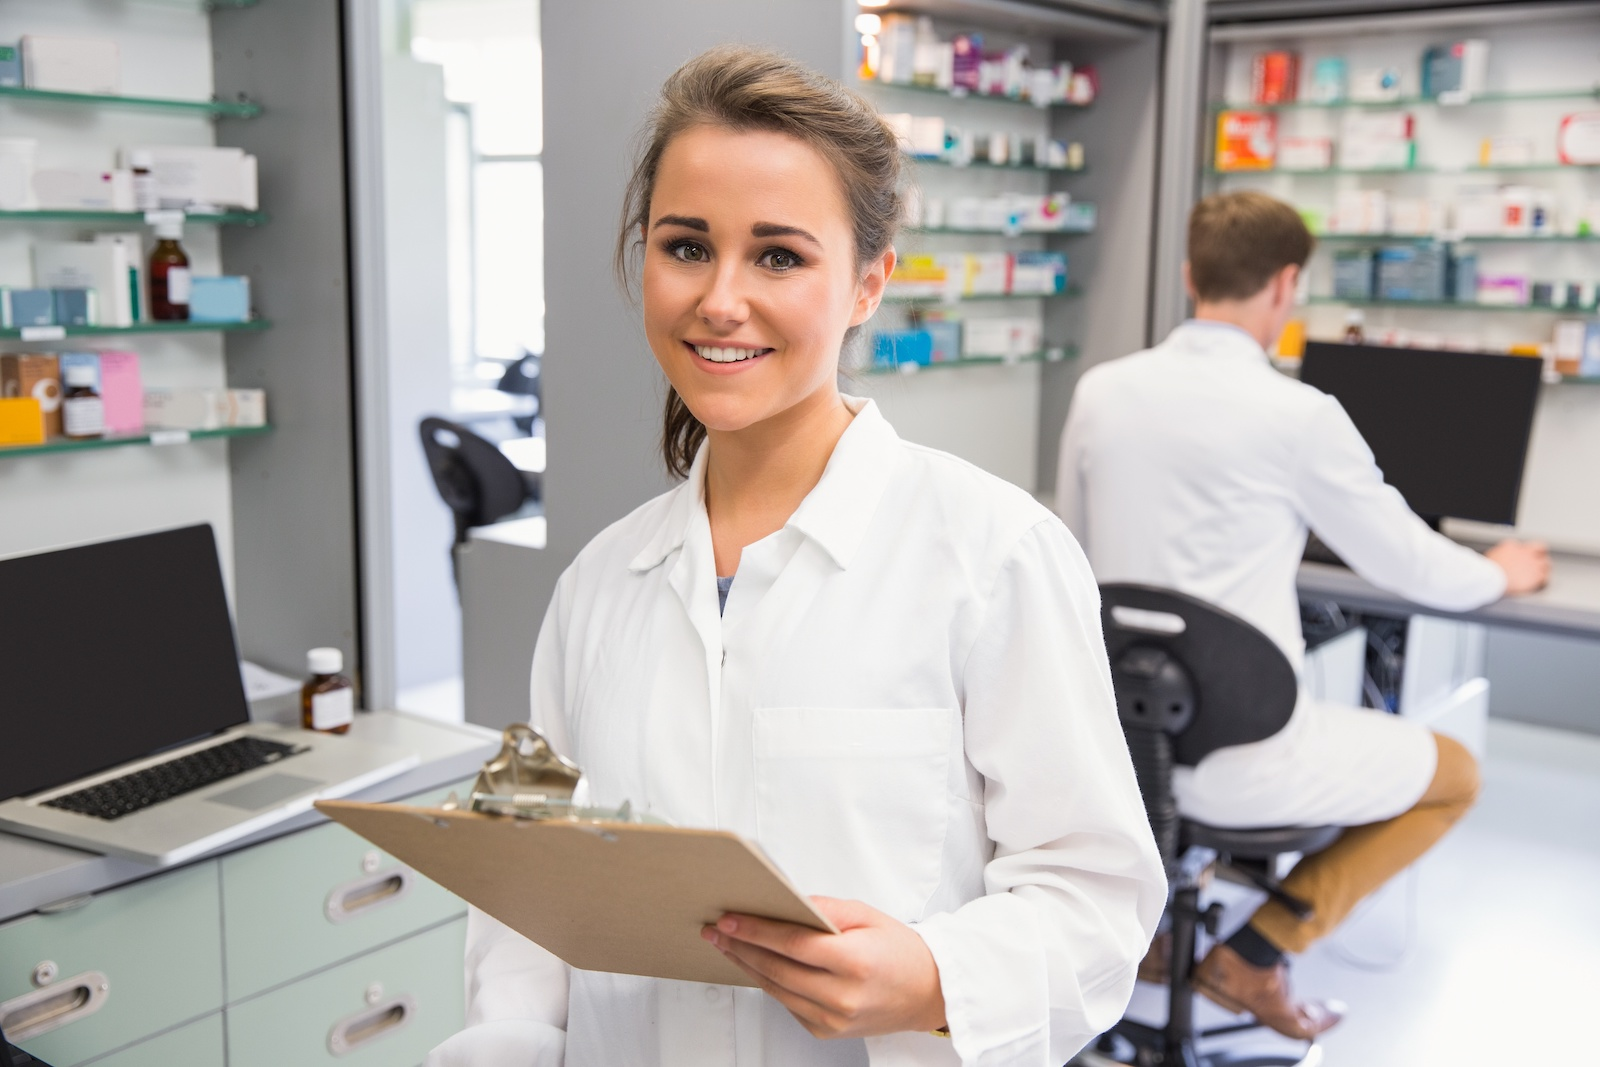 internship: Pharmacy intern smiling at the camera while holding a clipboard